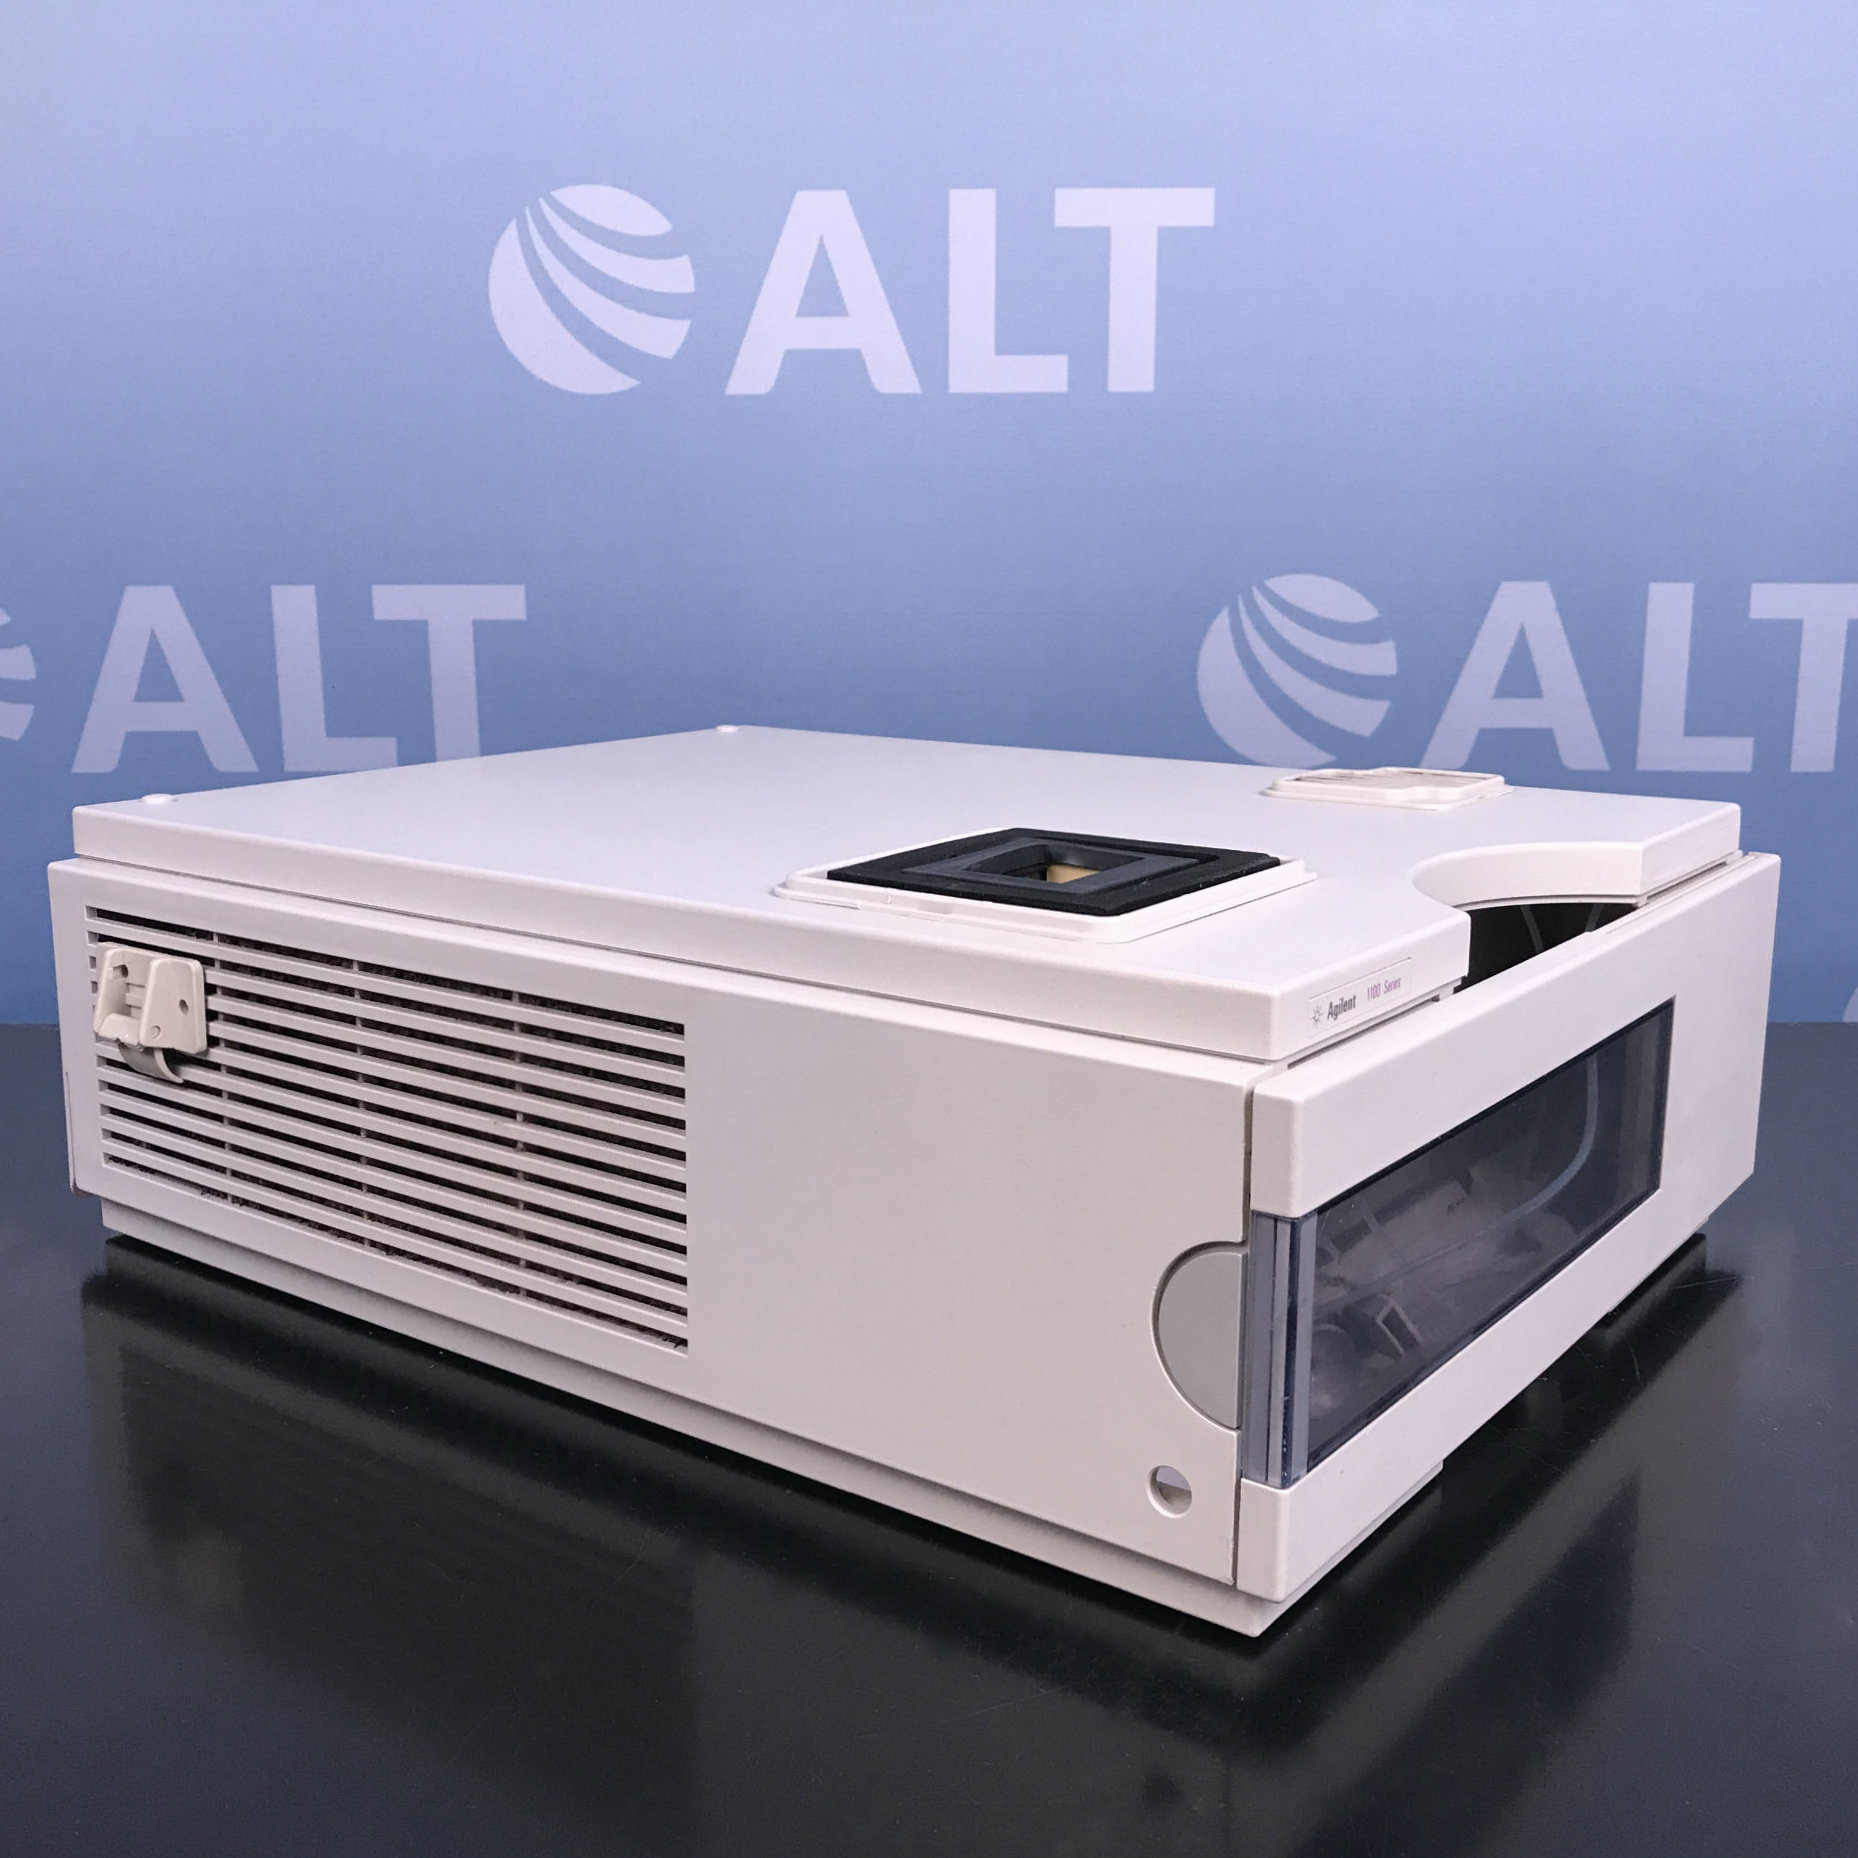 1100 Series ALS Therm G1330B Name